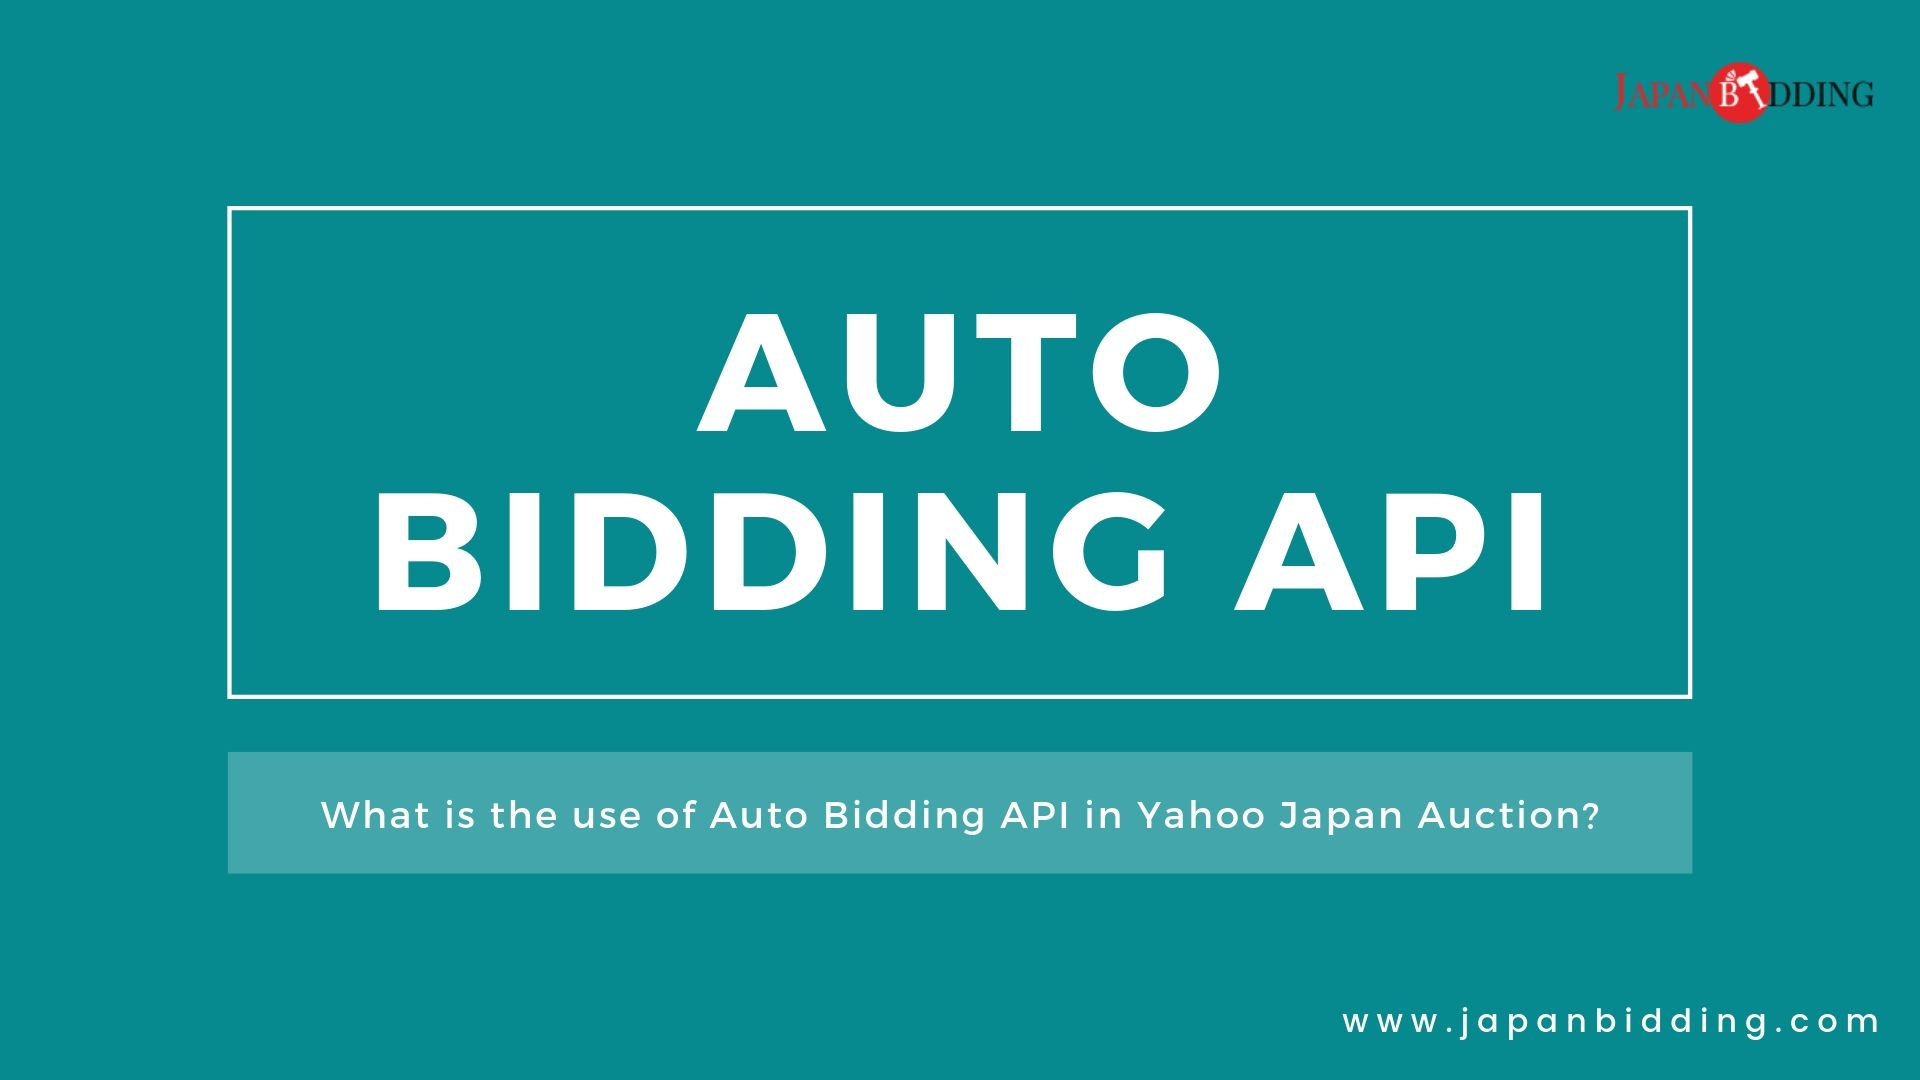 What is the use of Auto Bidding API in Yahoo Auction?